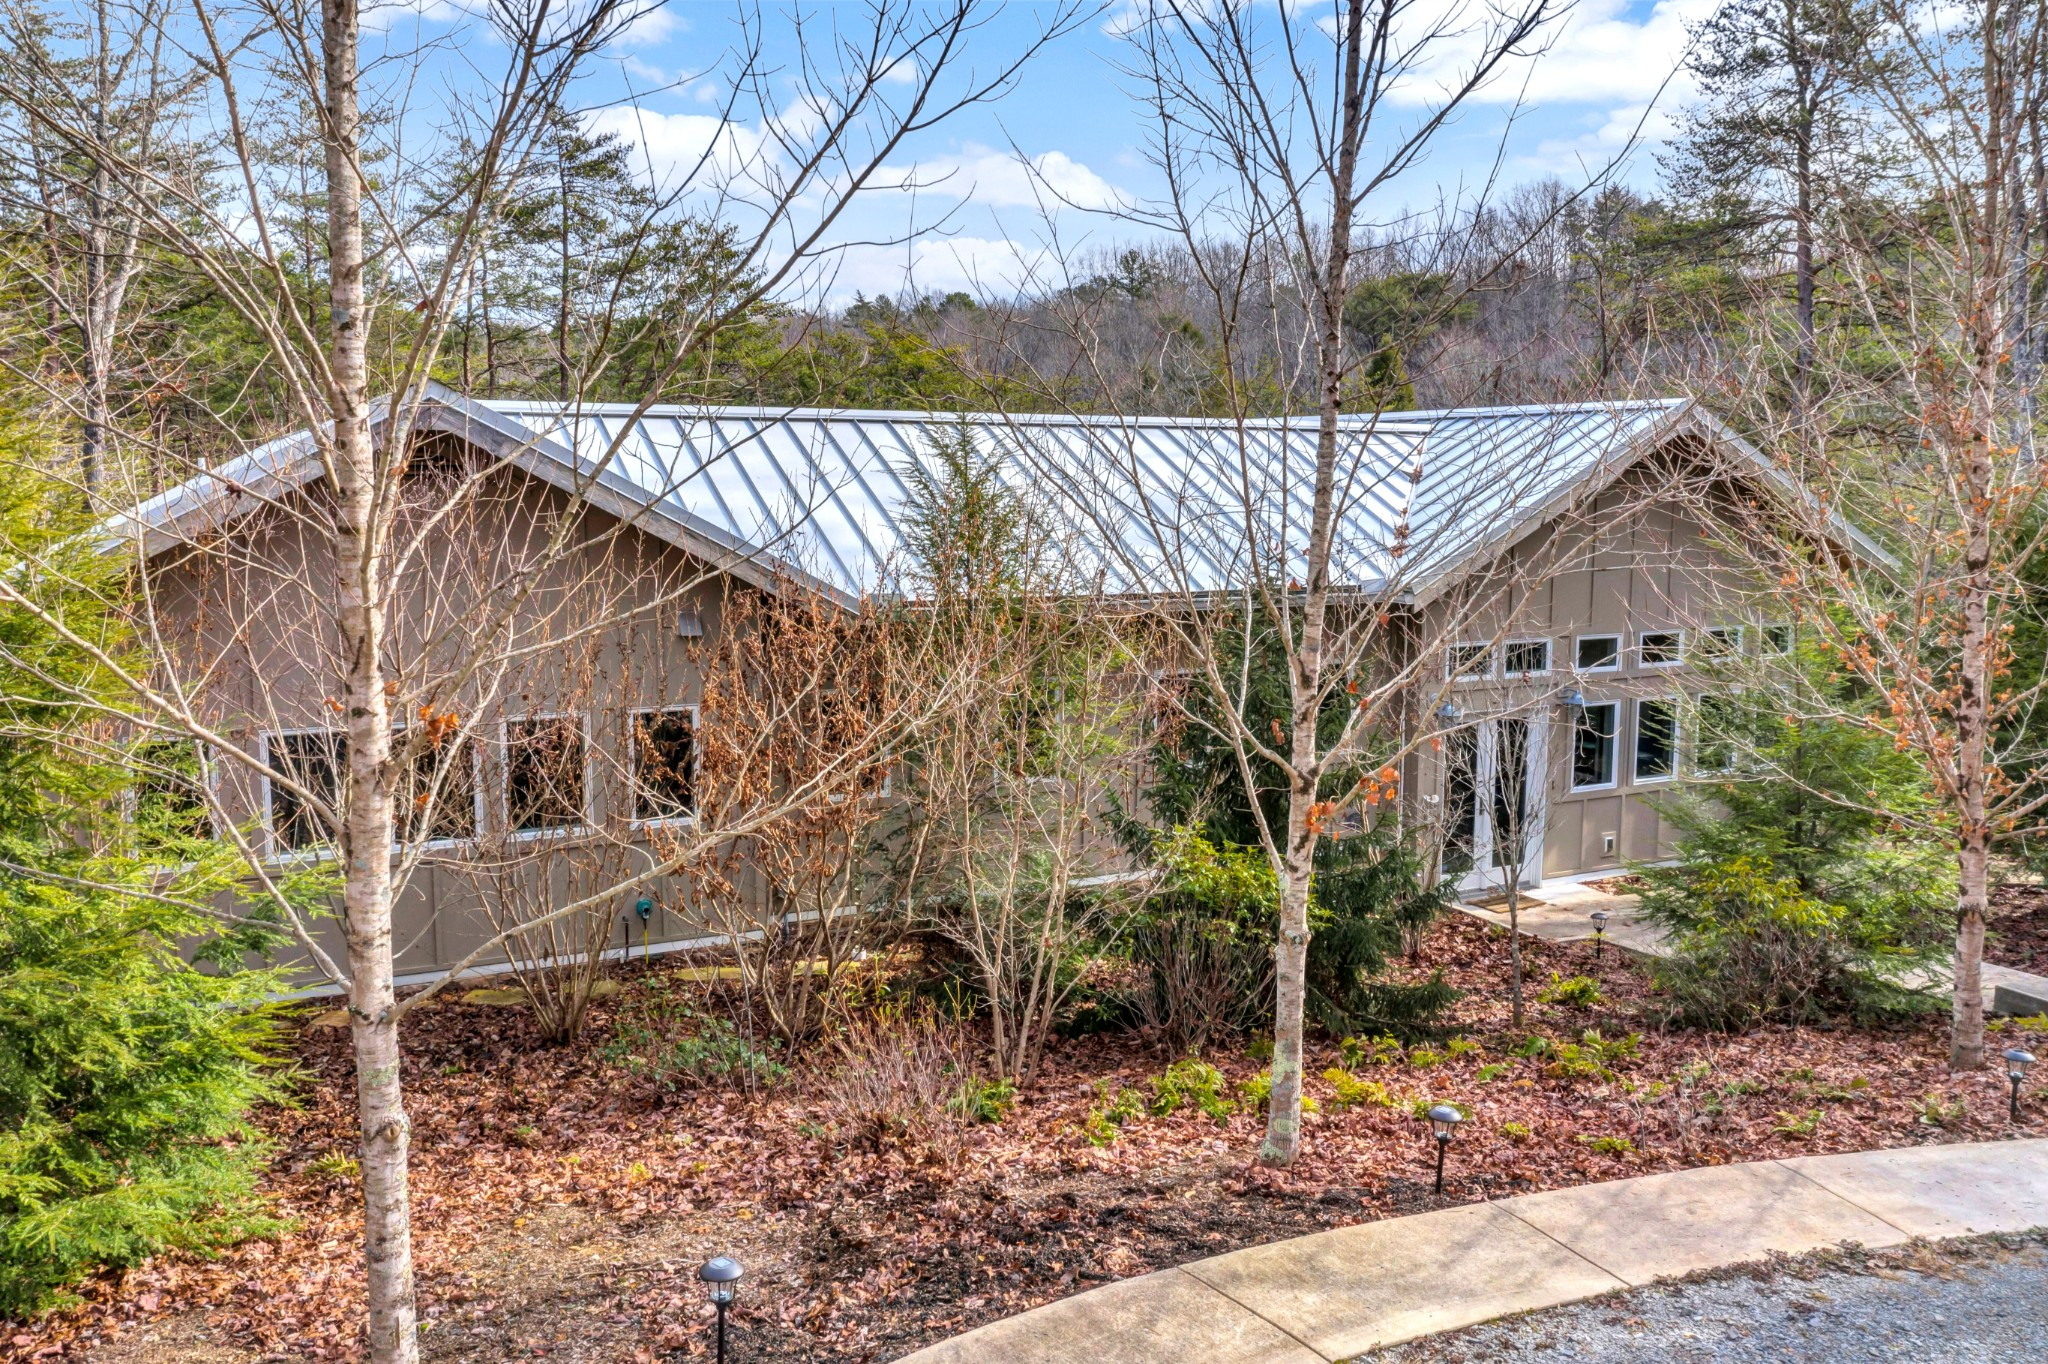 252 Bobcat Hollow Rd, Coalmont, TN 37313 - Coalmont, TN real estate listing